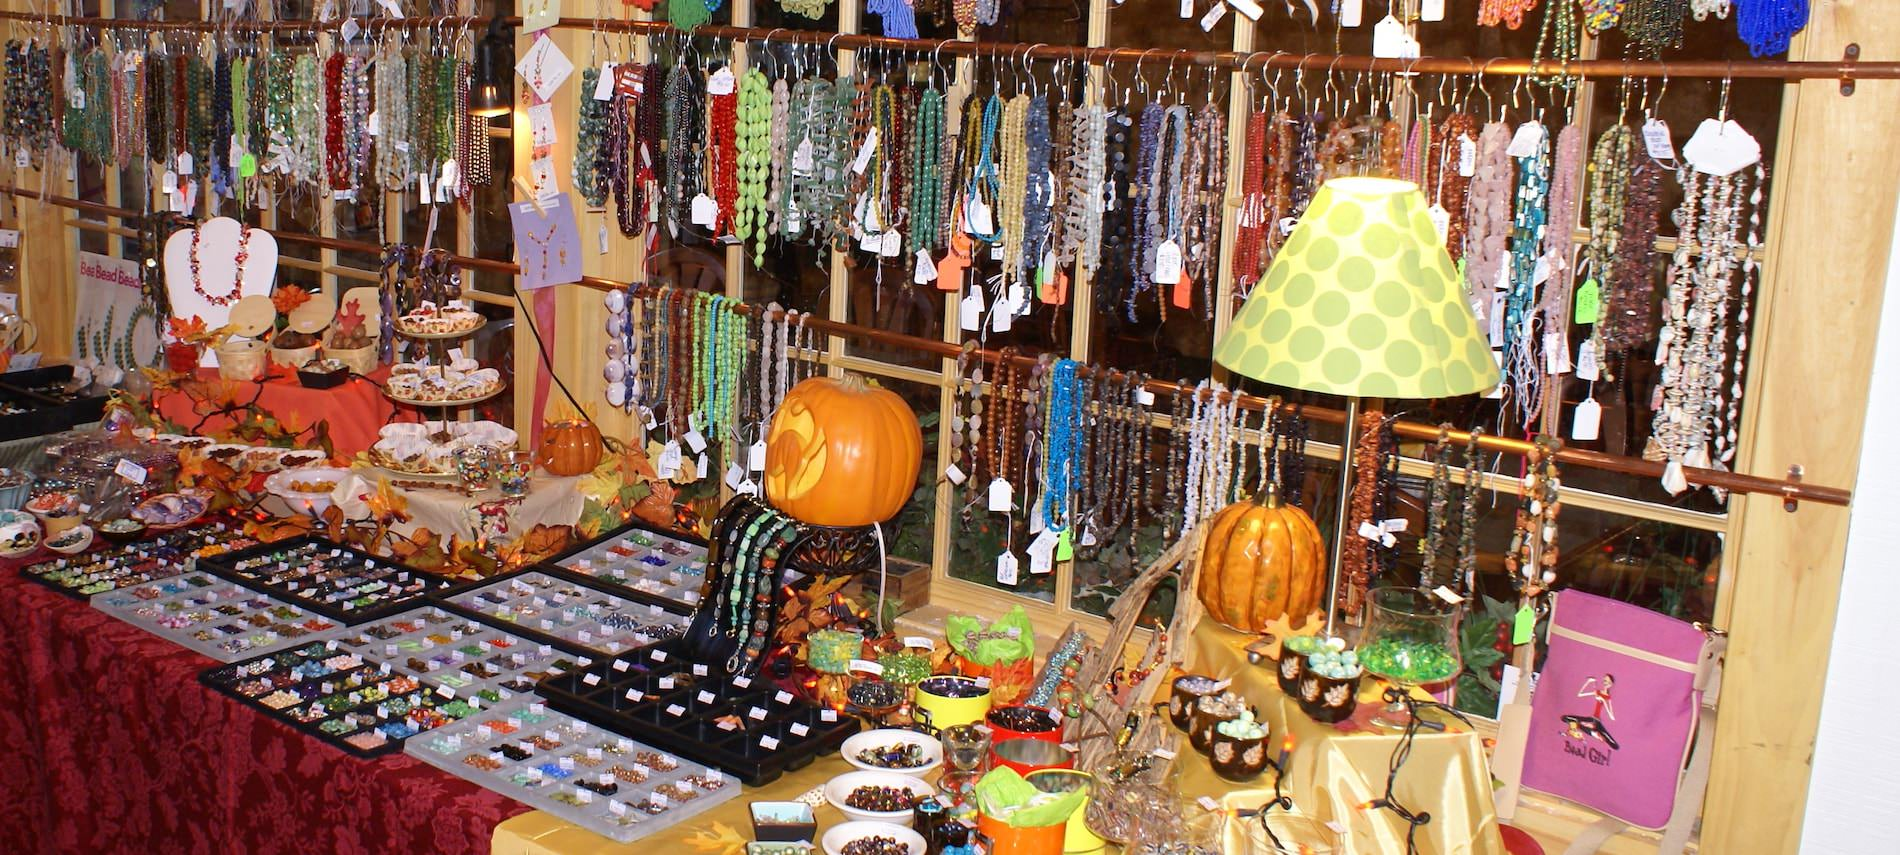 Table display inside a store full of necklaces, bracelets, rings, and more